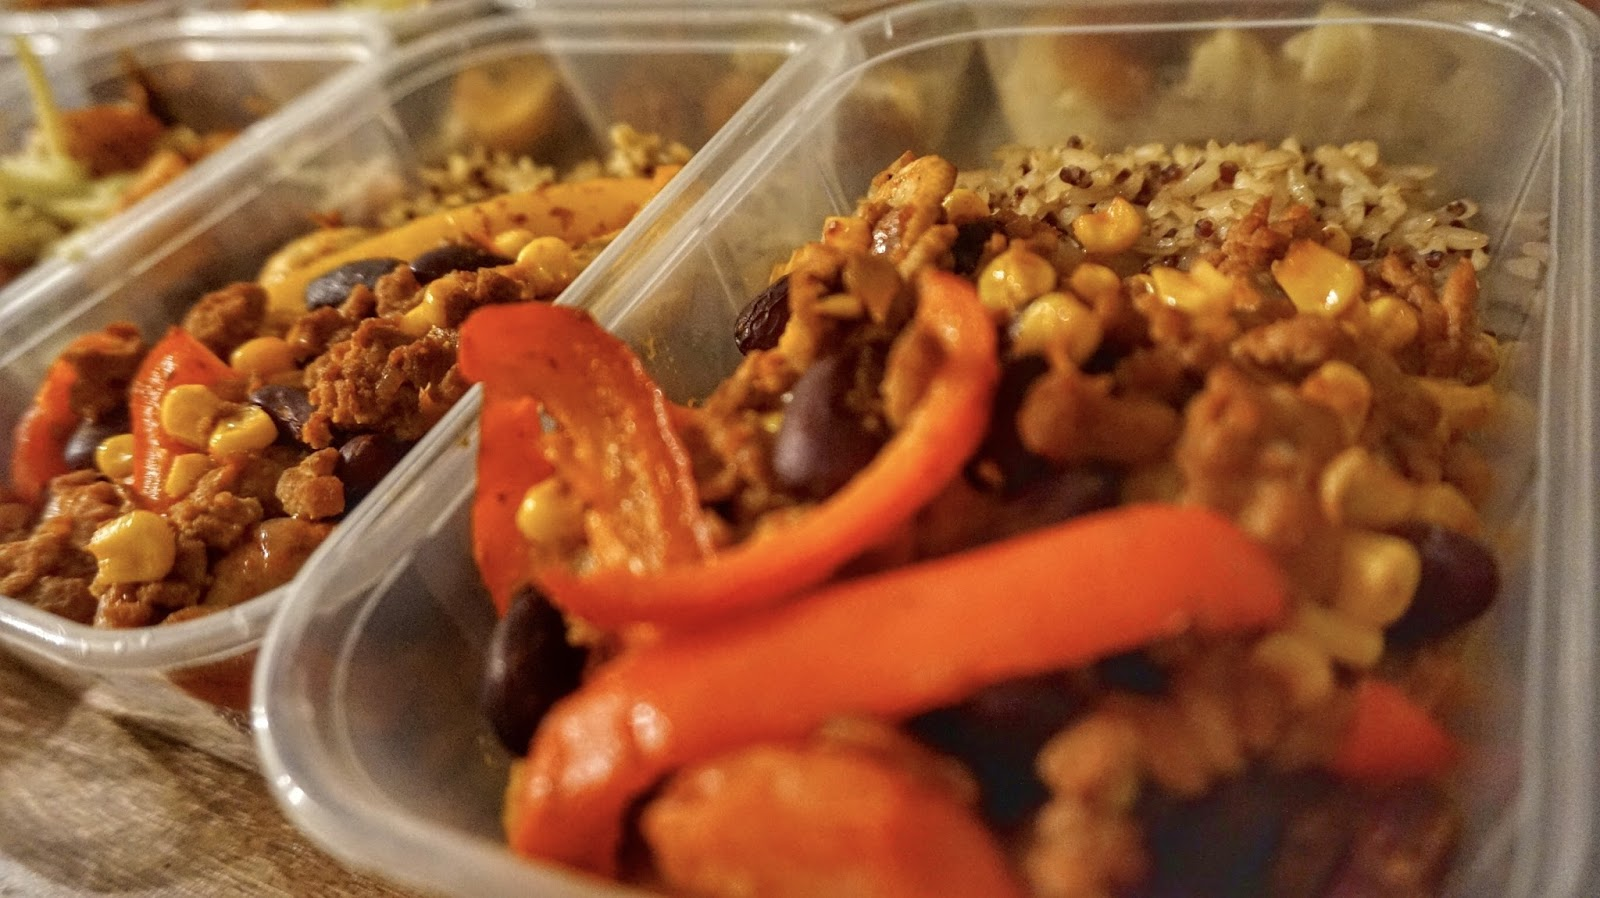 Fitness: How I Meal Prep